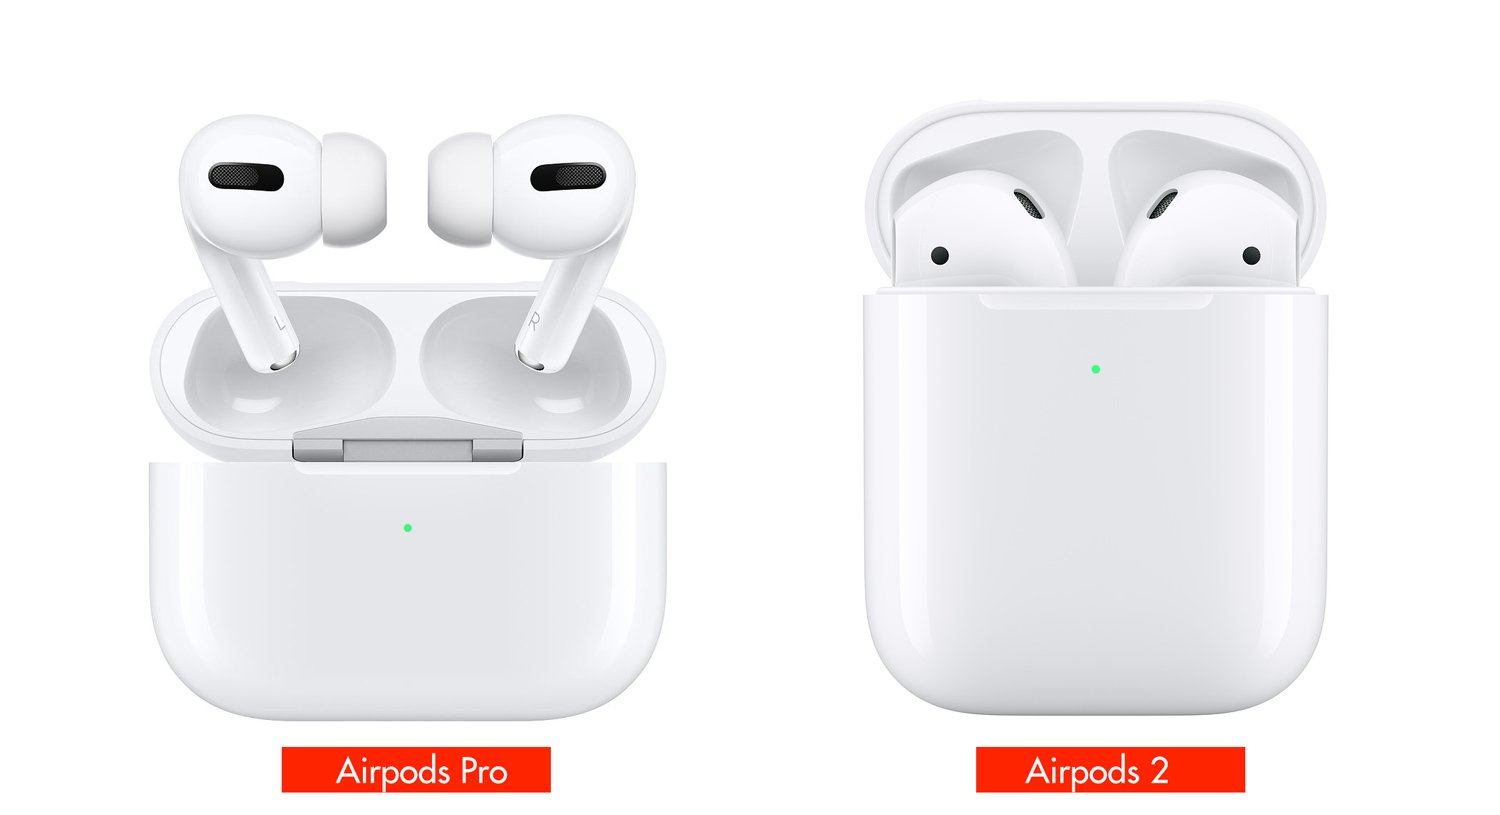 So sánh Airpods Pro với Airpods 2